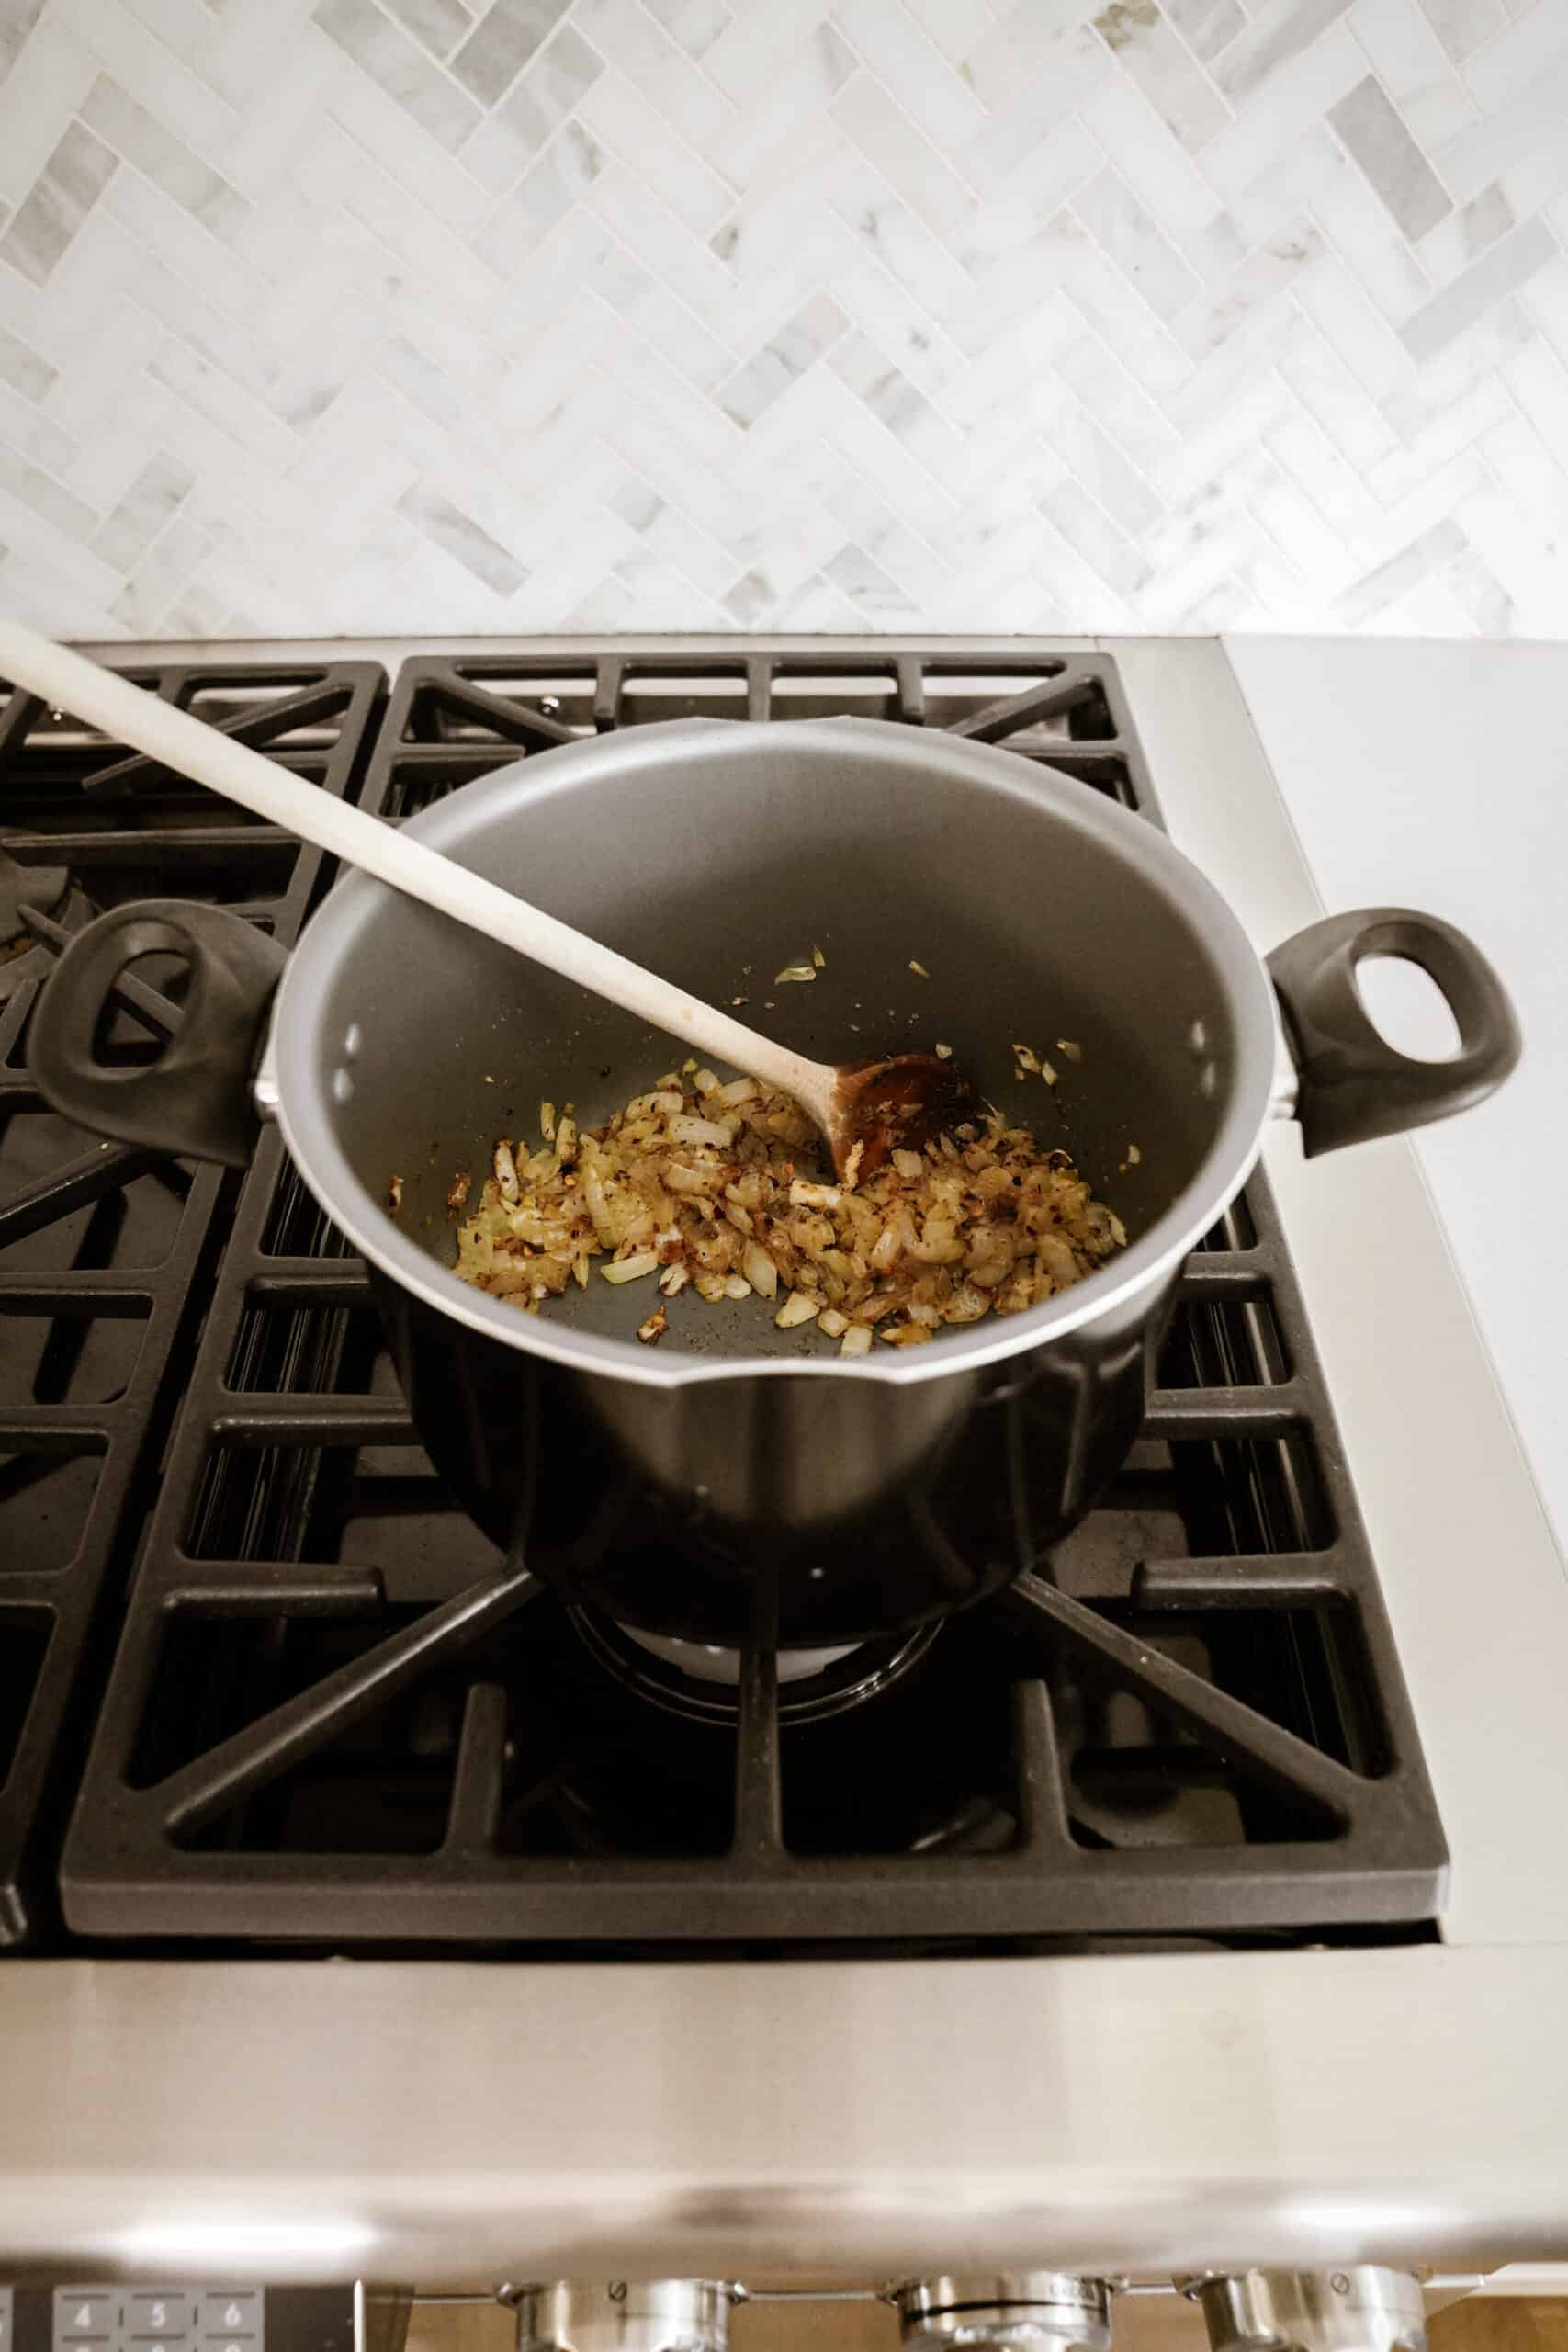 Onions in a pot on a stove with a wooden spoon